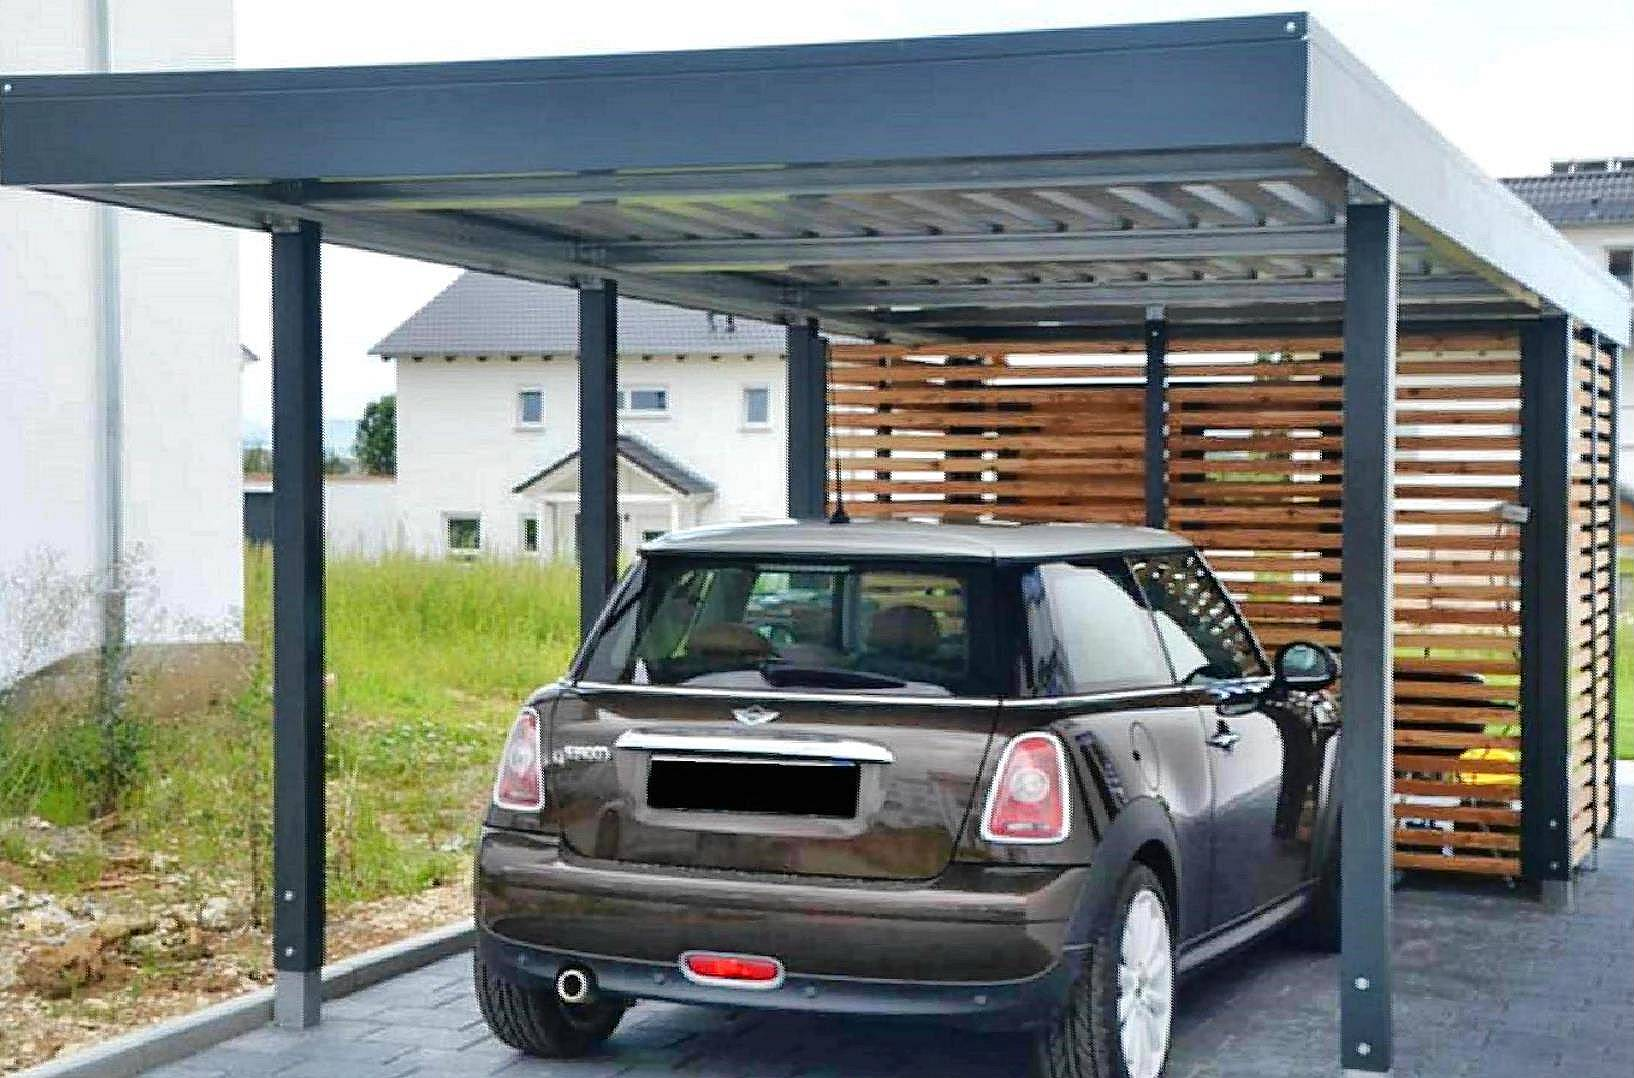 stahlcarport preis carport in holz alu stahl carport bausatz. Black Bedroom Furniture Sets. Home Design Ideas